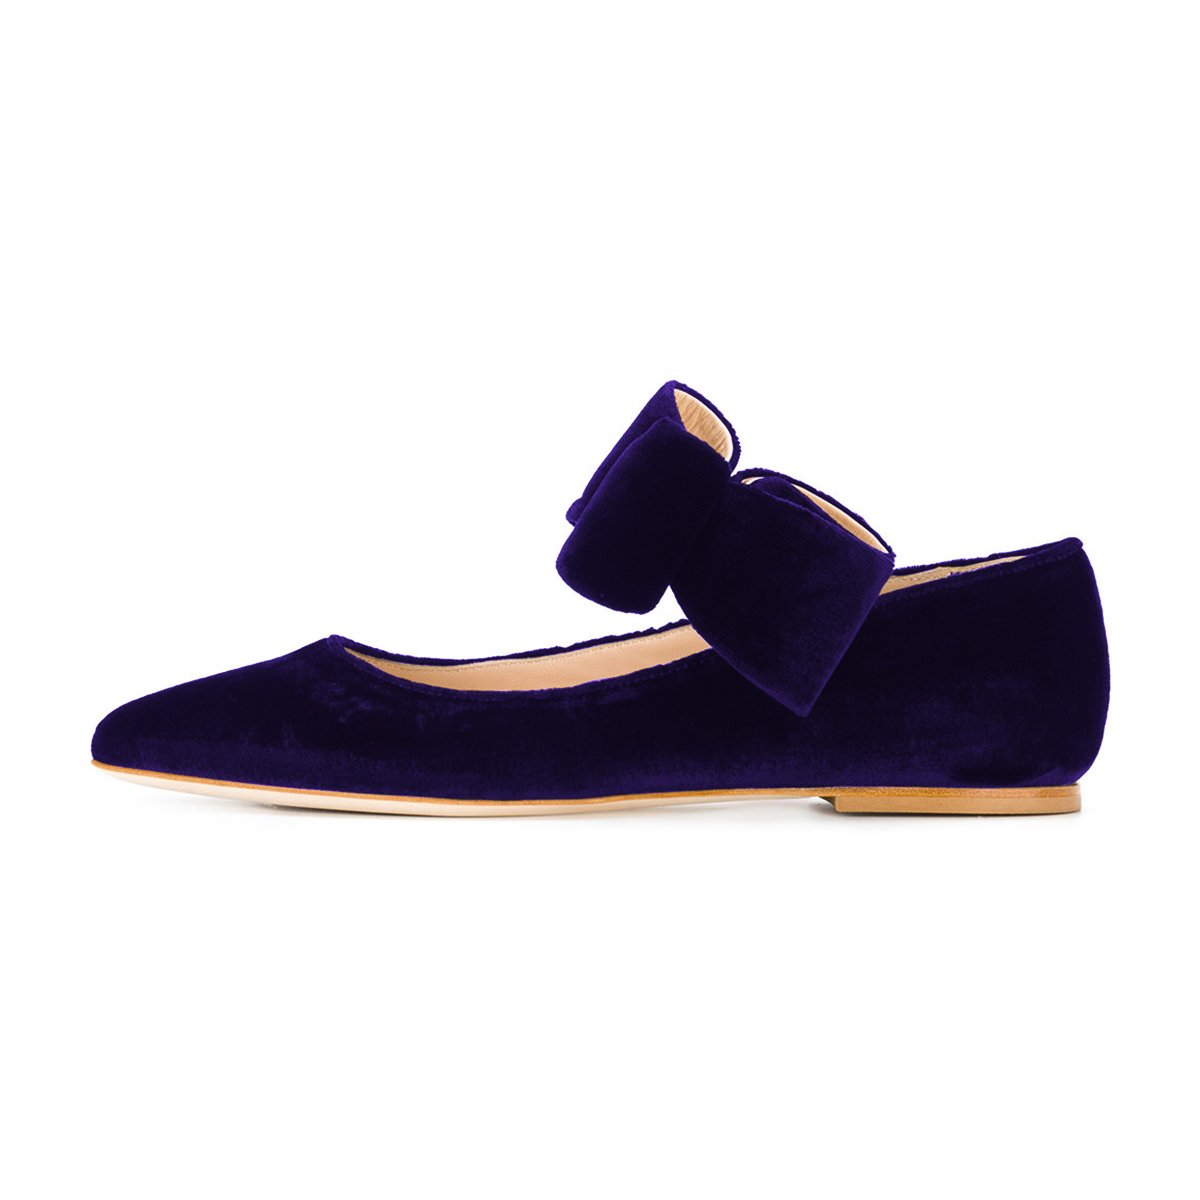 7c26db1578d9 ... FSJ Women Cute Pointed Pointed Pointed Toe Flats With Bowknot Velvet  Low Heels Slip On Comfy ...